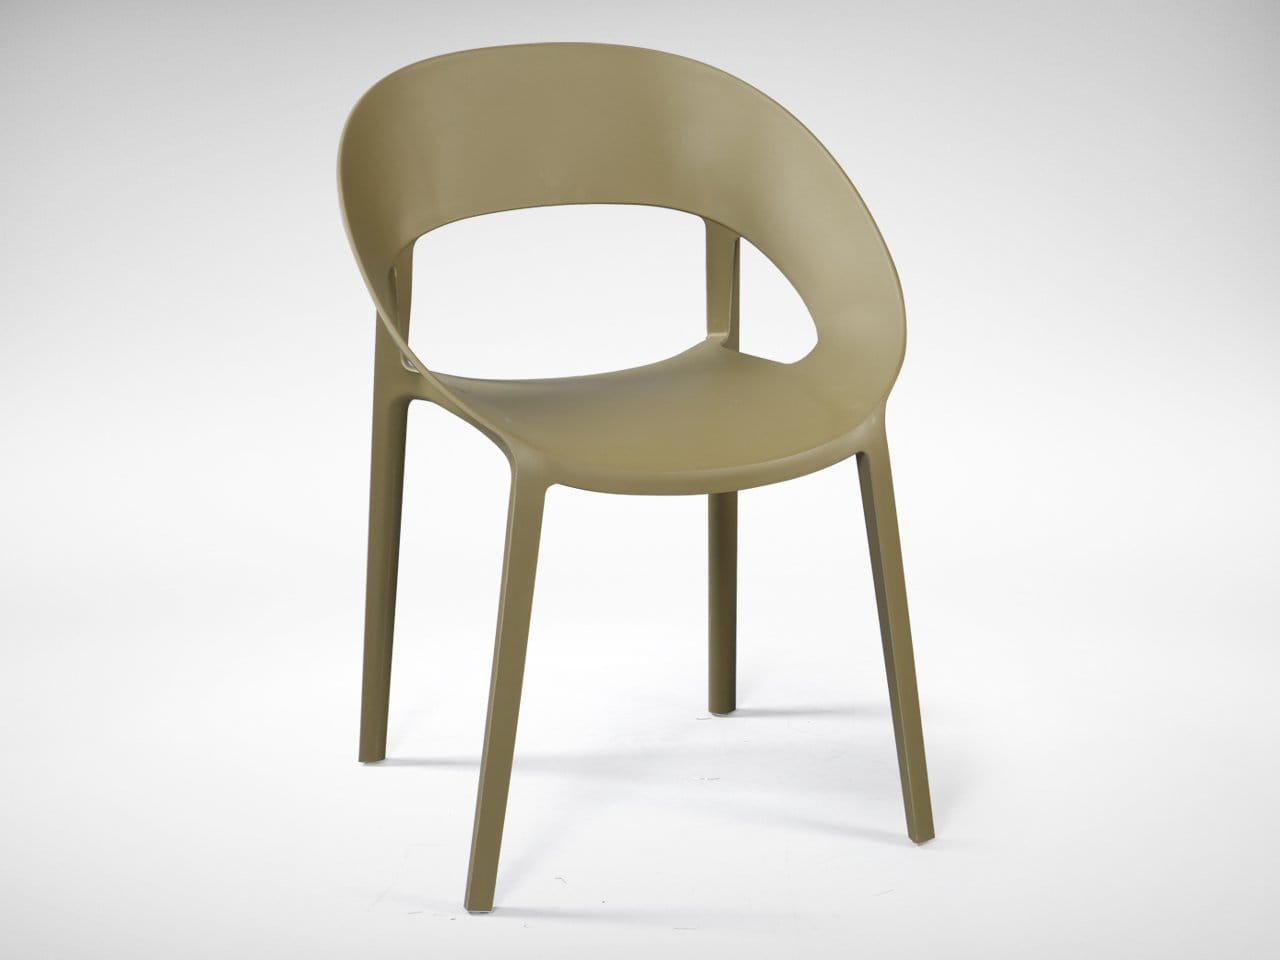 office chair in mumbai organizer pockets comfort design the and table people